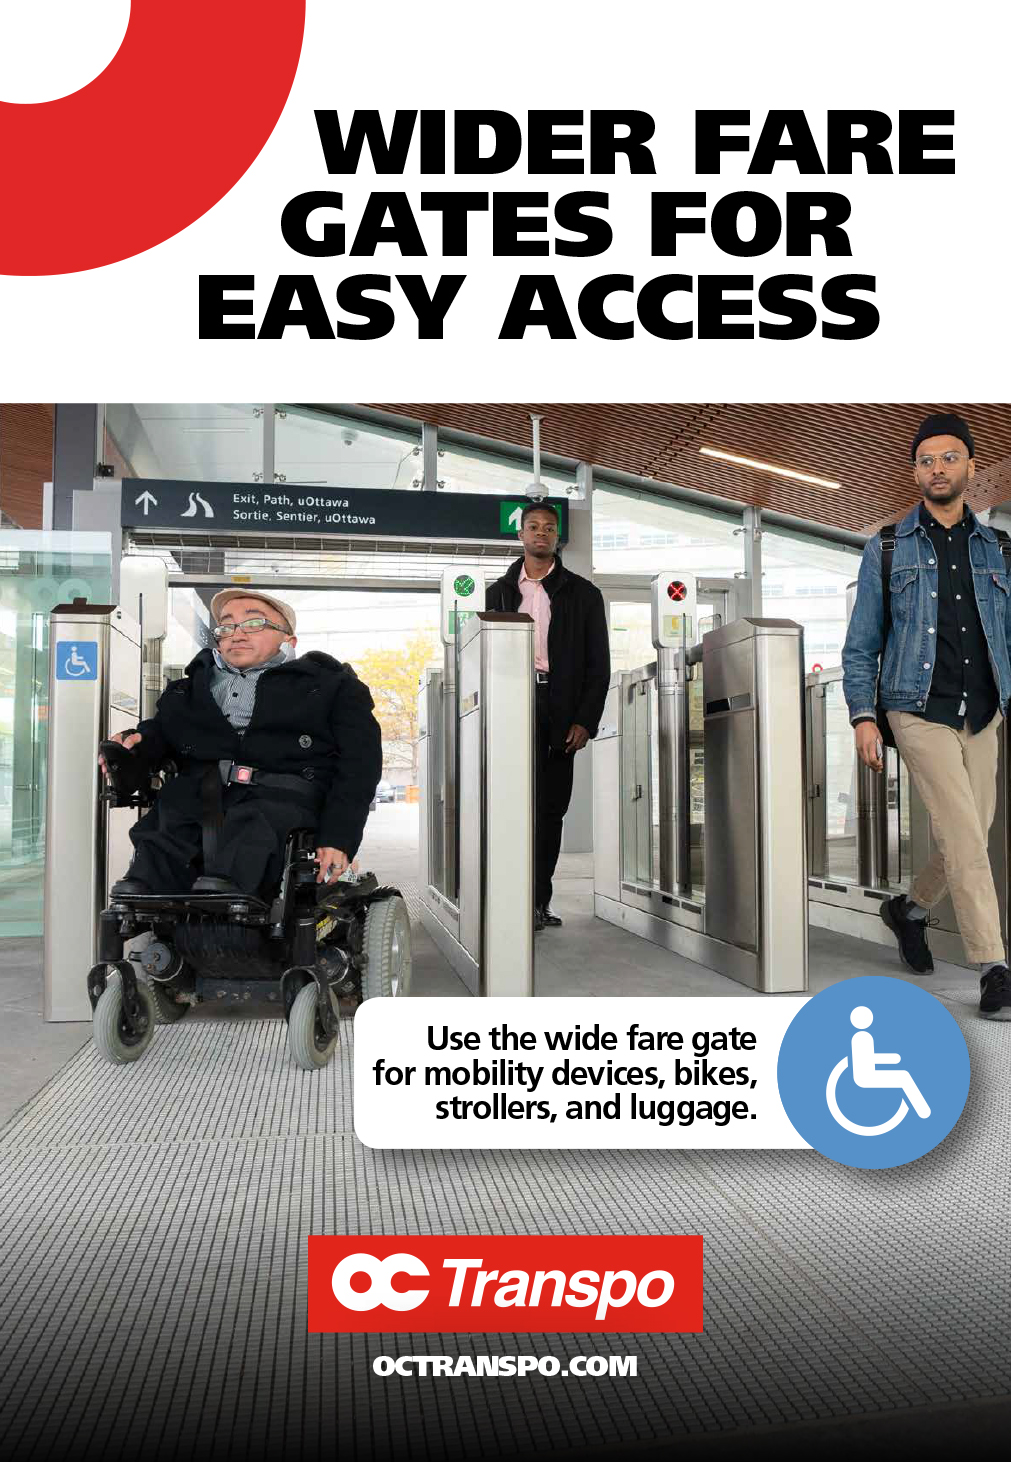 Man in an electric wheelchair going through the wider, accessible fare gate. Image text: Wider fare gates for easy access. Use the wide fare gate for mobility devices, bikes, strollers and luggage